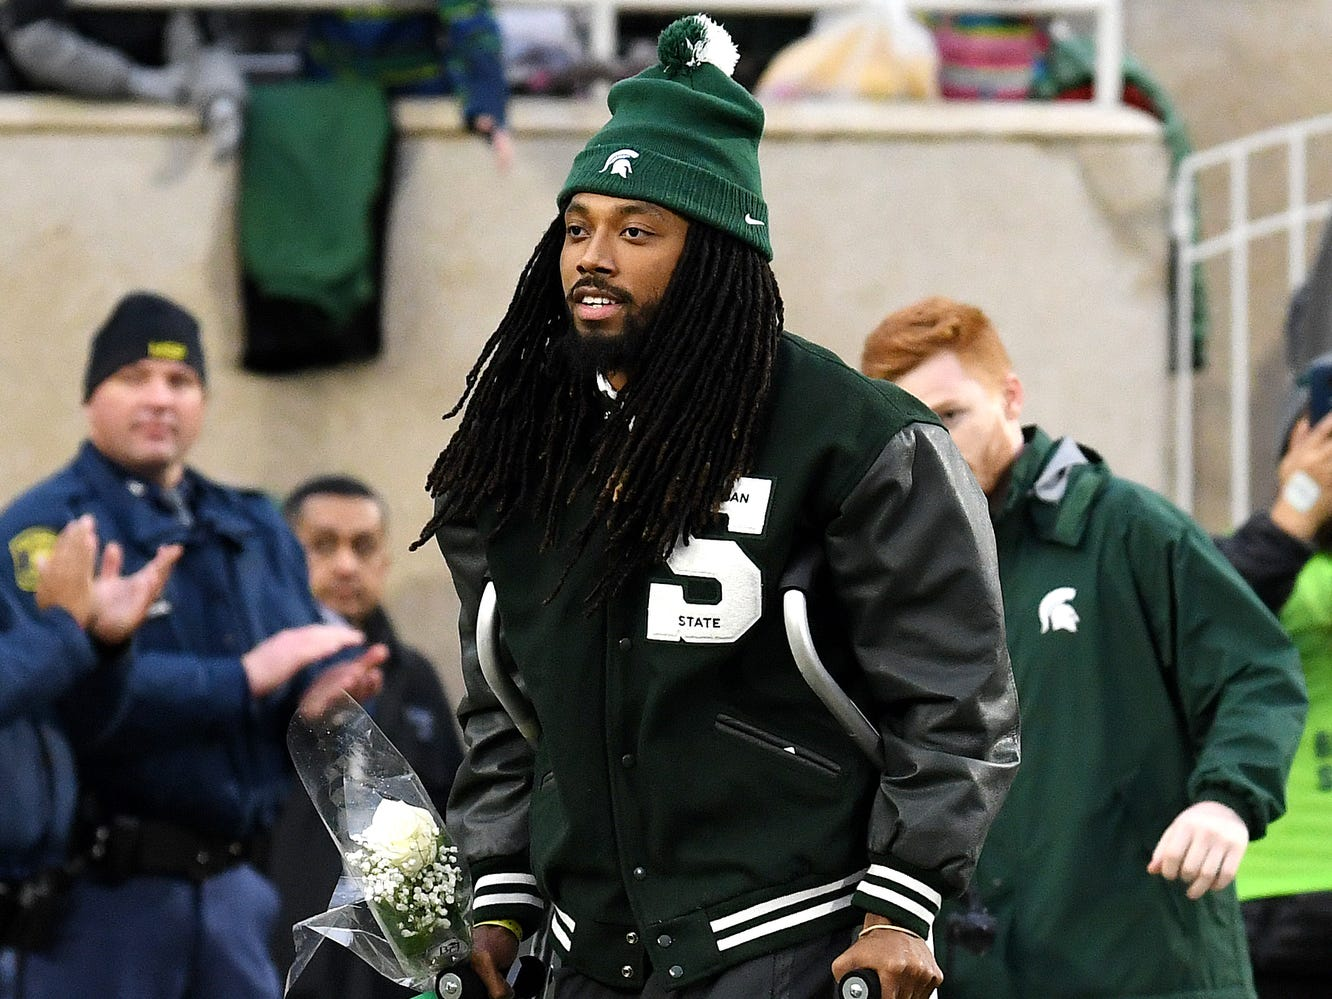 Michigan State senior Felton Davis III walks toward his family after being recognized before the game against Rutgers on Saturday, Nov. 24, 2018, at Spartan Stadium in East Lansing.